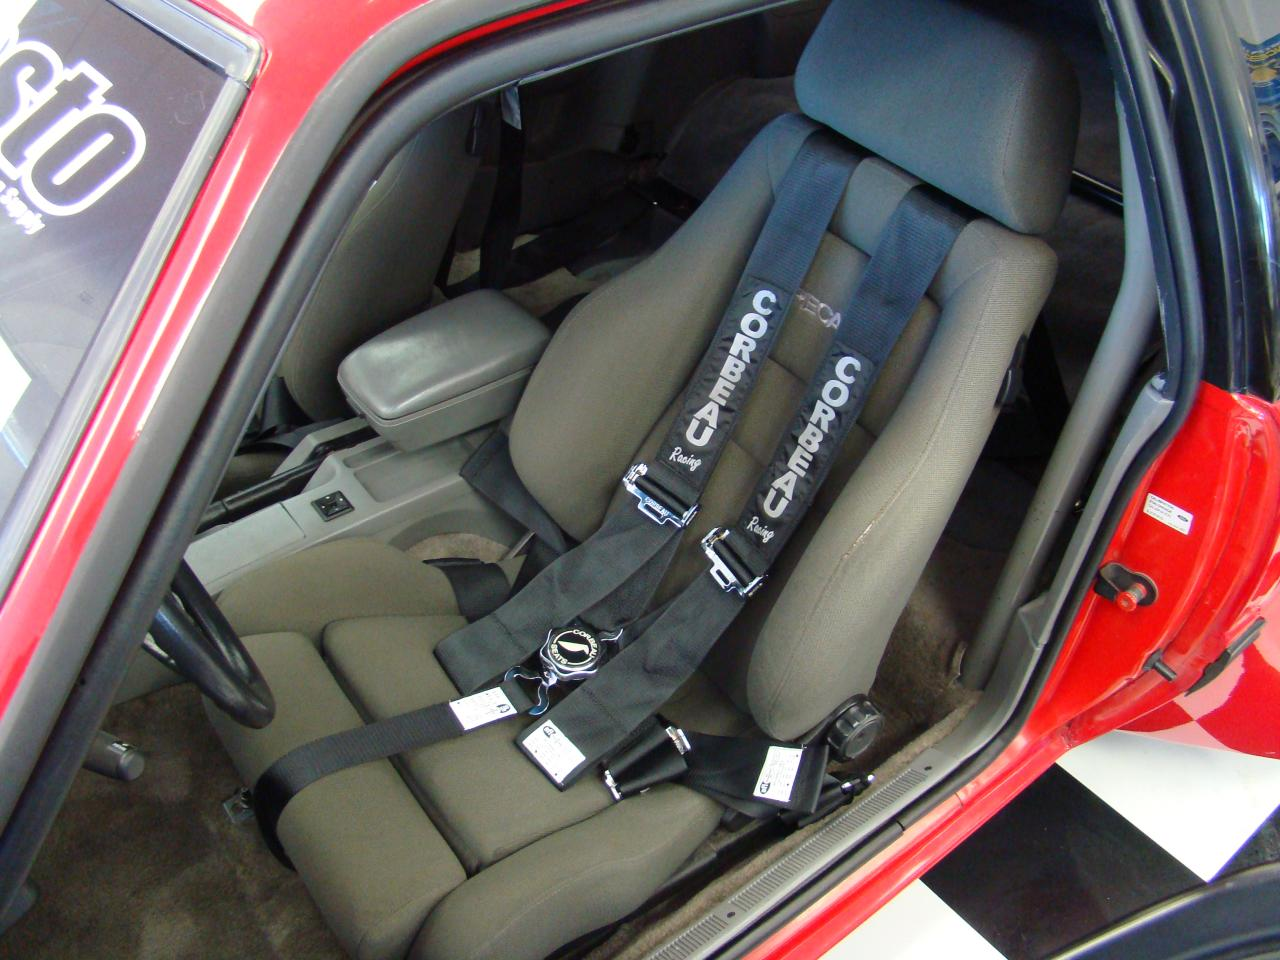 JBA Team Dominator GTA Recaro Racing Seats